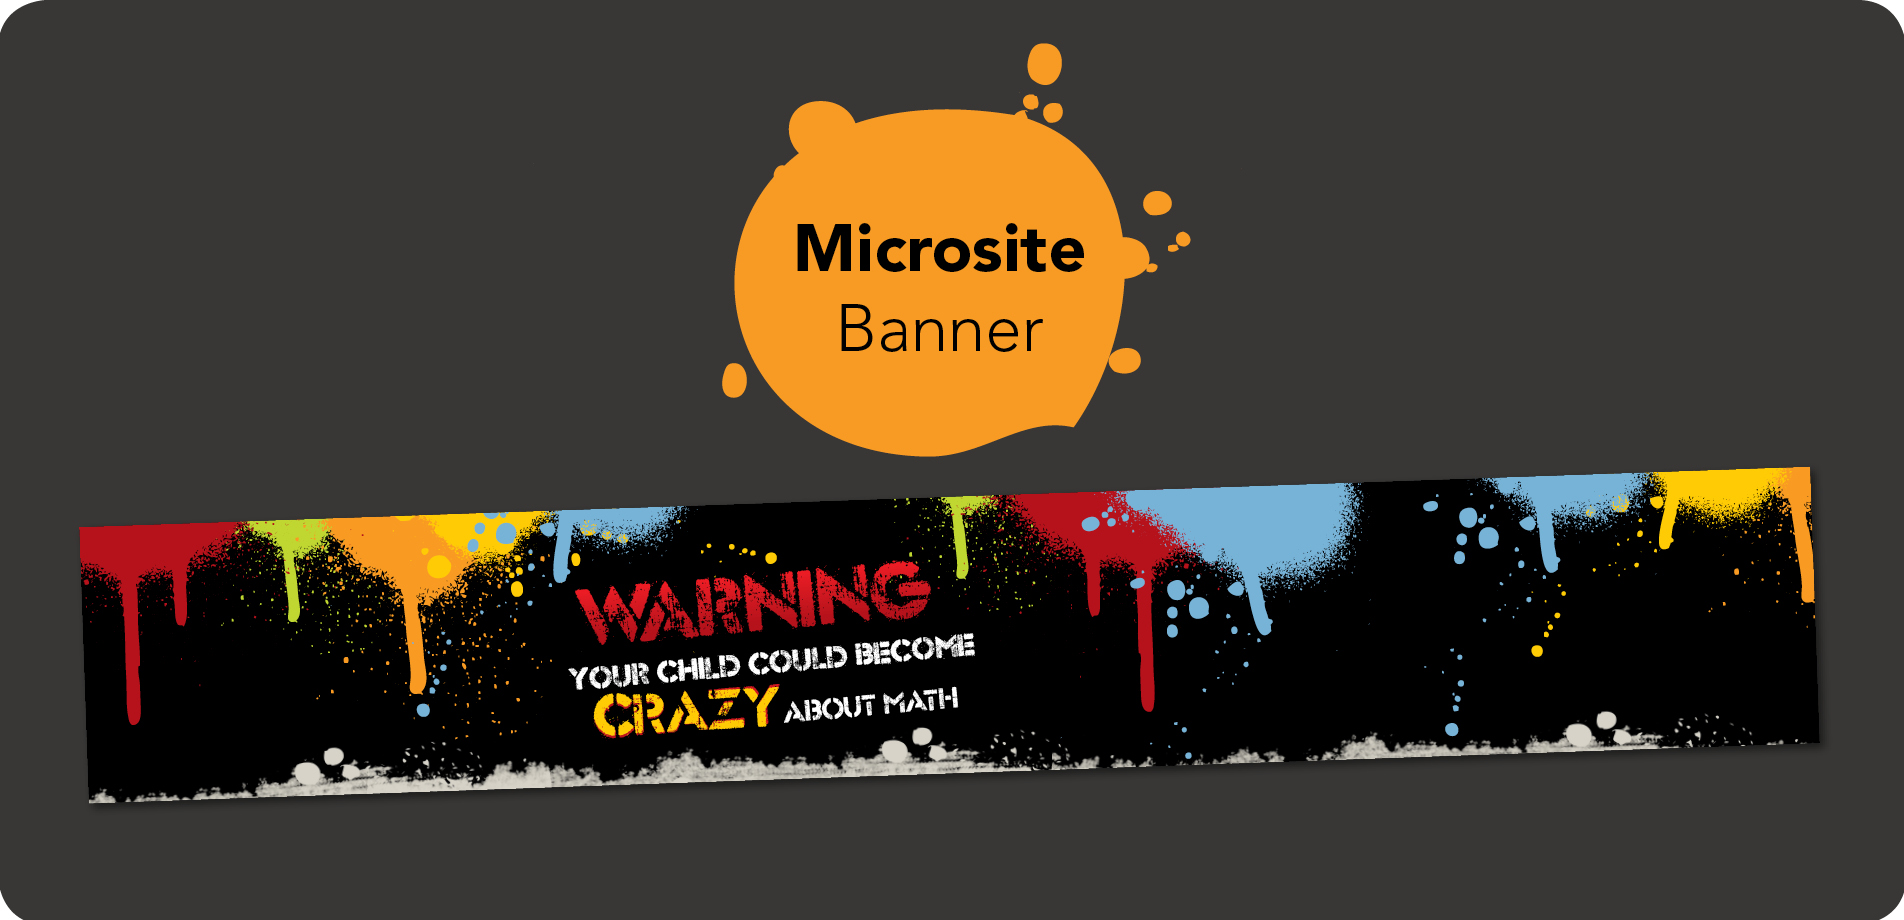 Examples-Microsite-Banner-Warning-2016